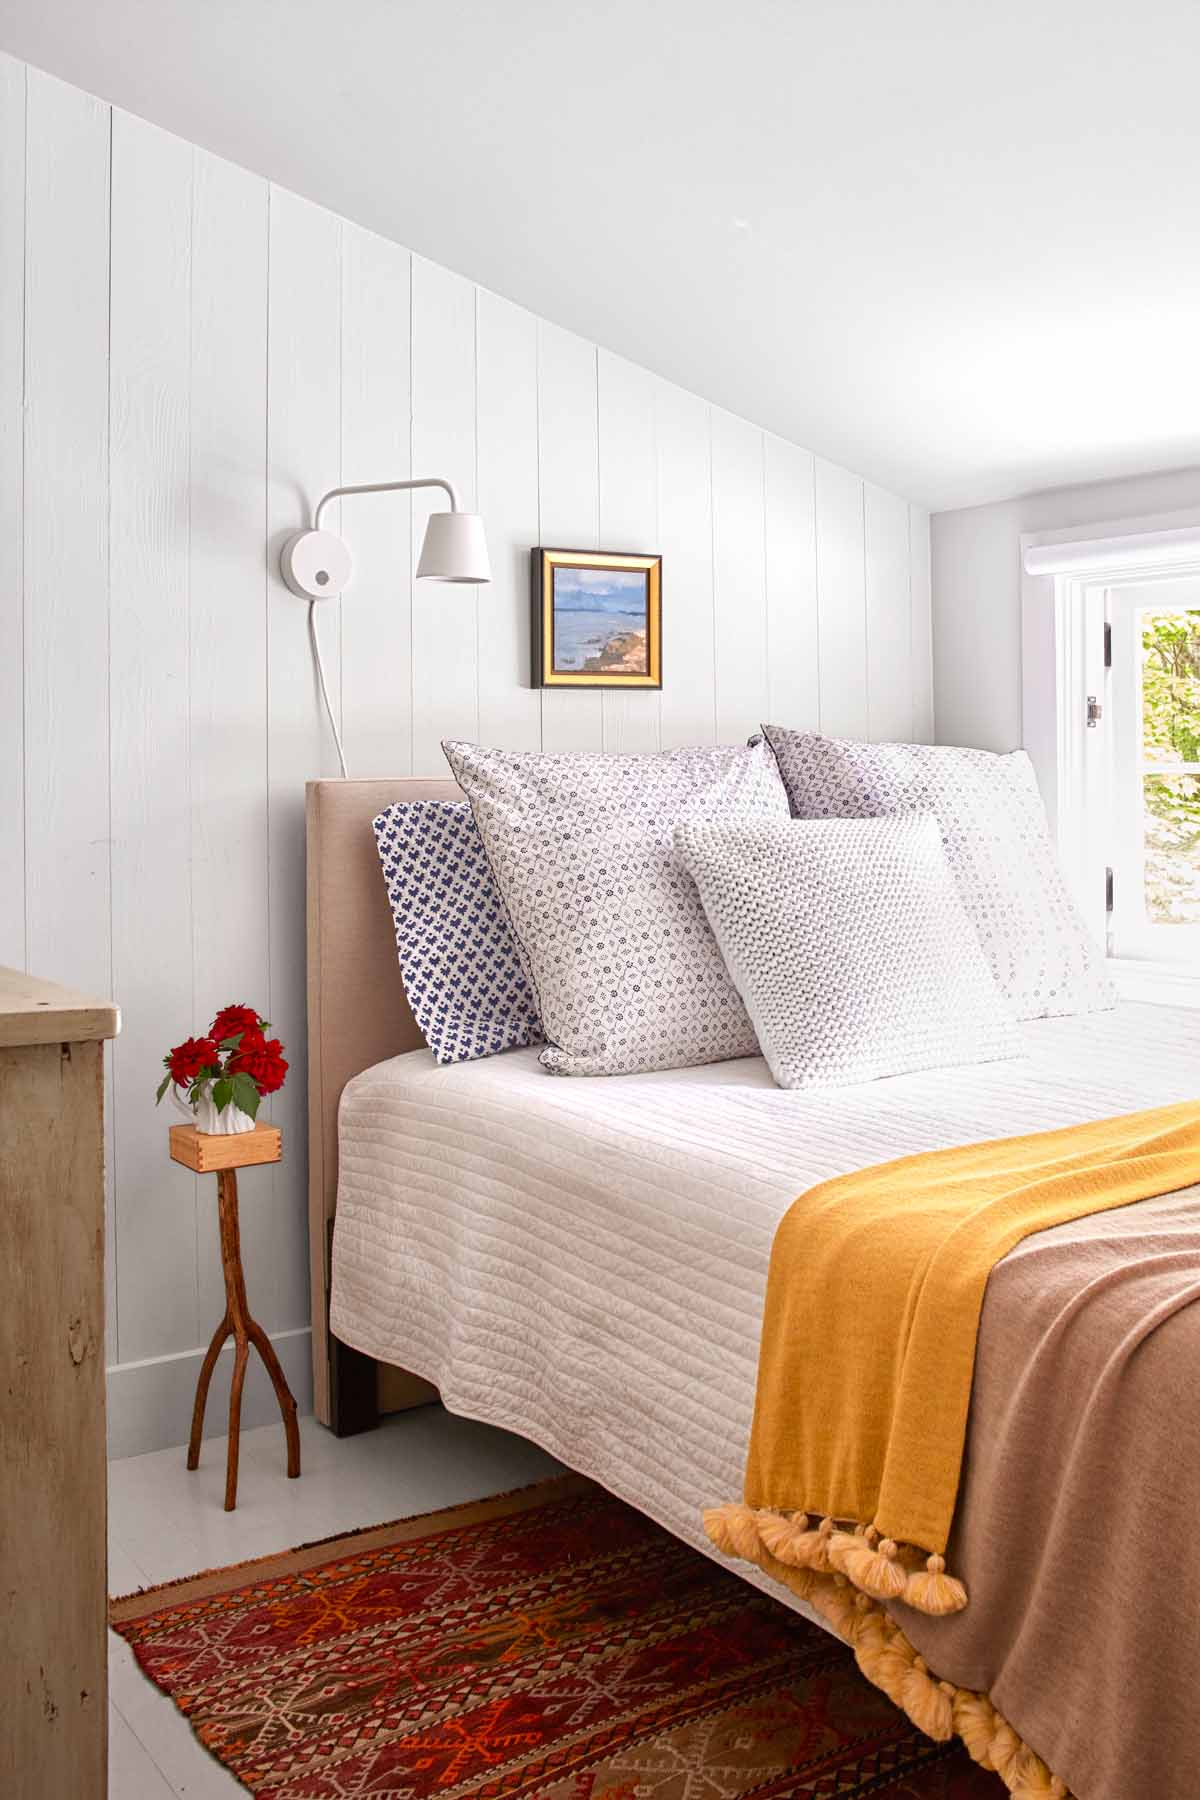 30+ Guest Bedroom Pictures - Decor Ideas for Guest Rooms on Decor For Room  id=20317